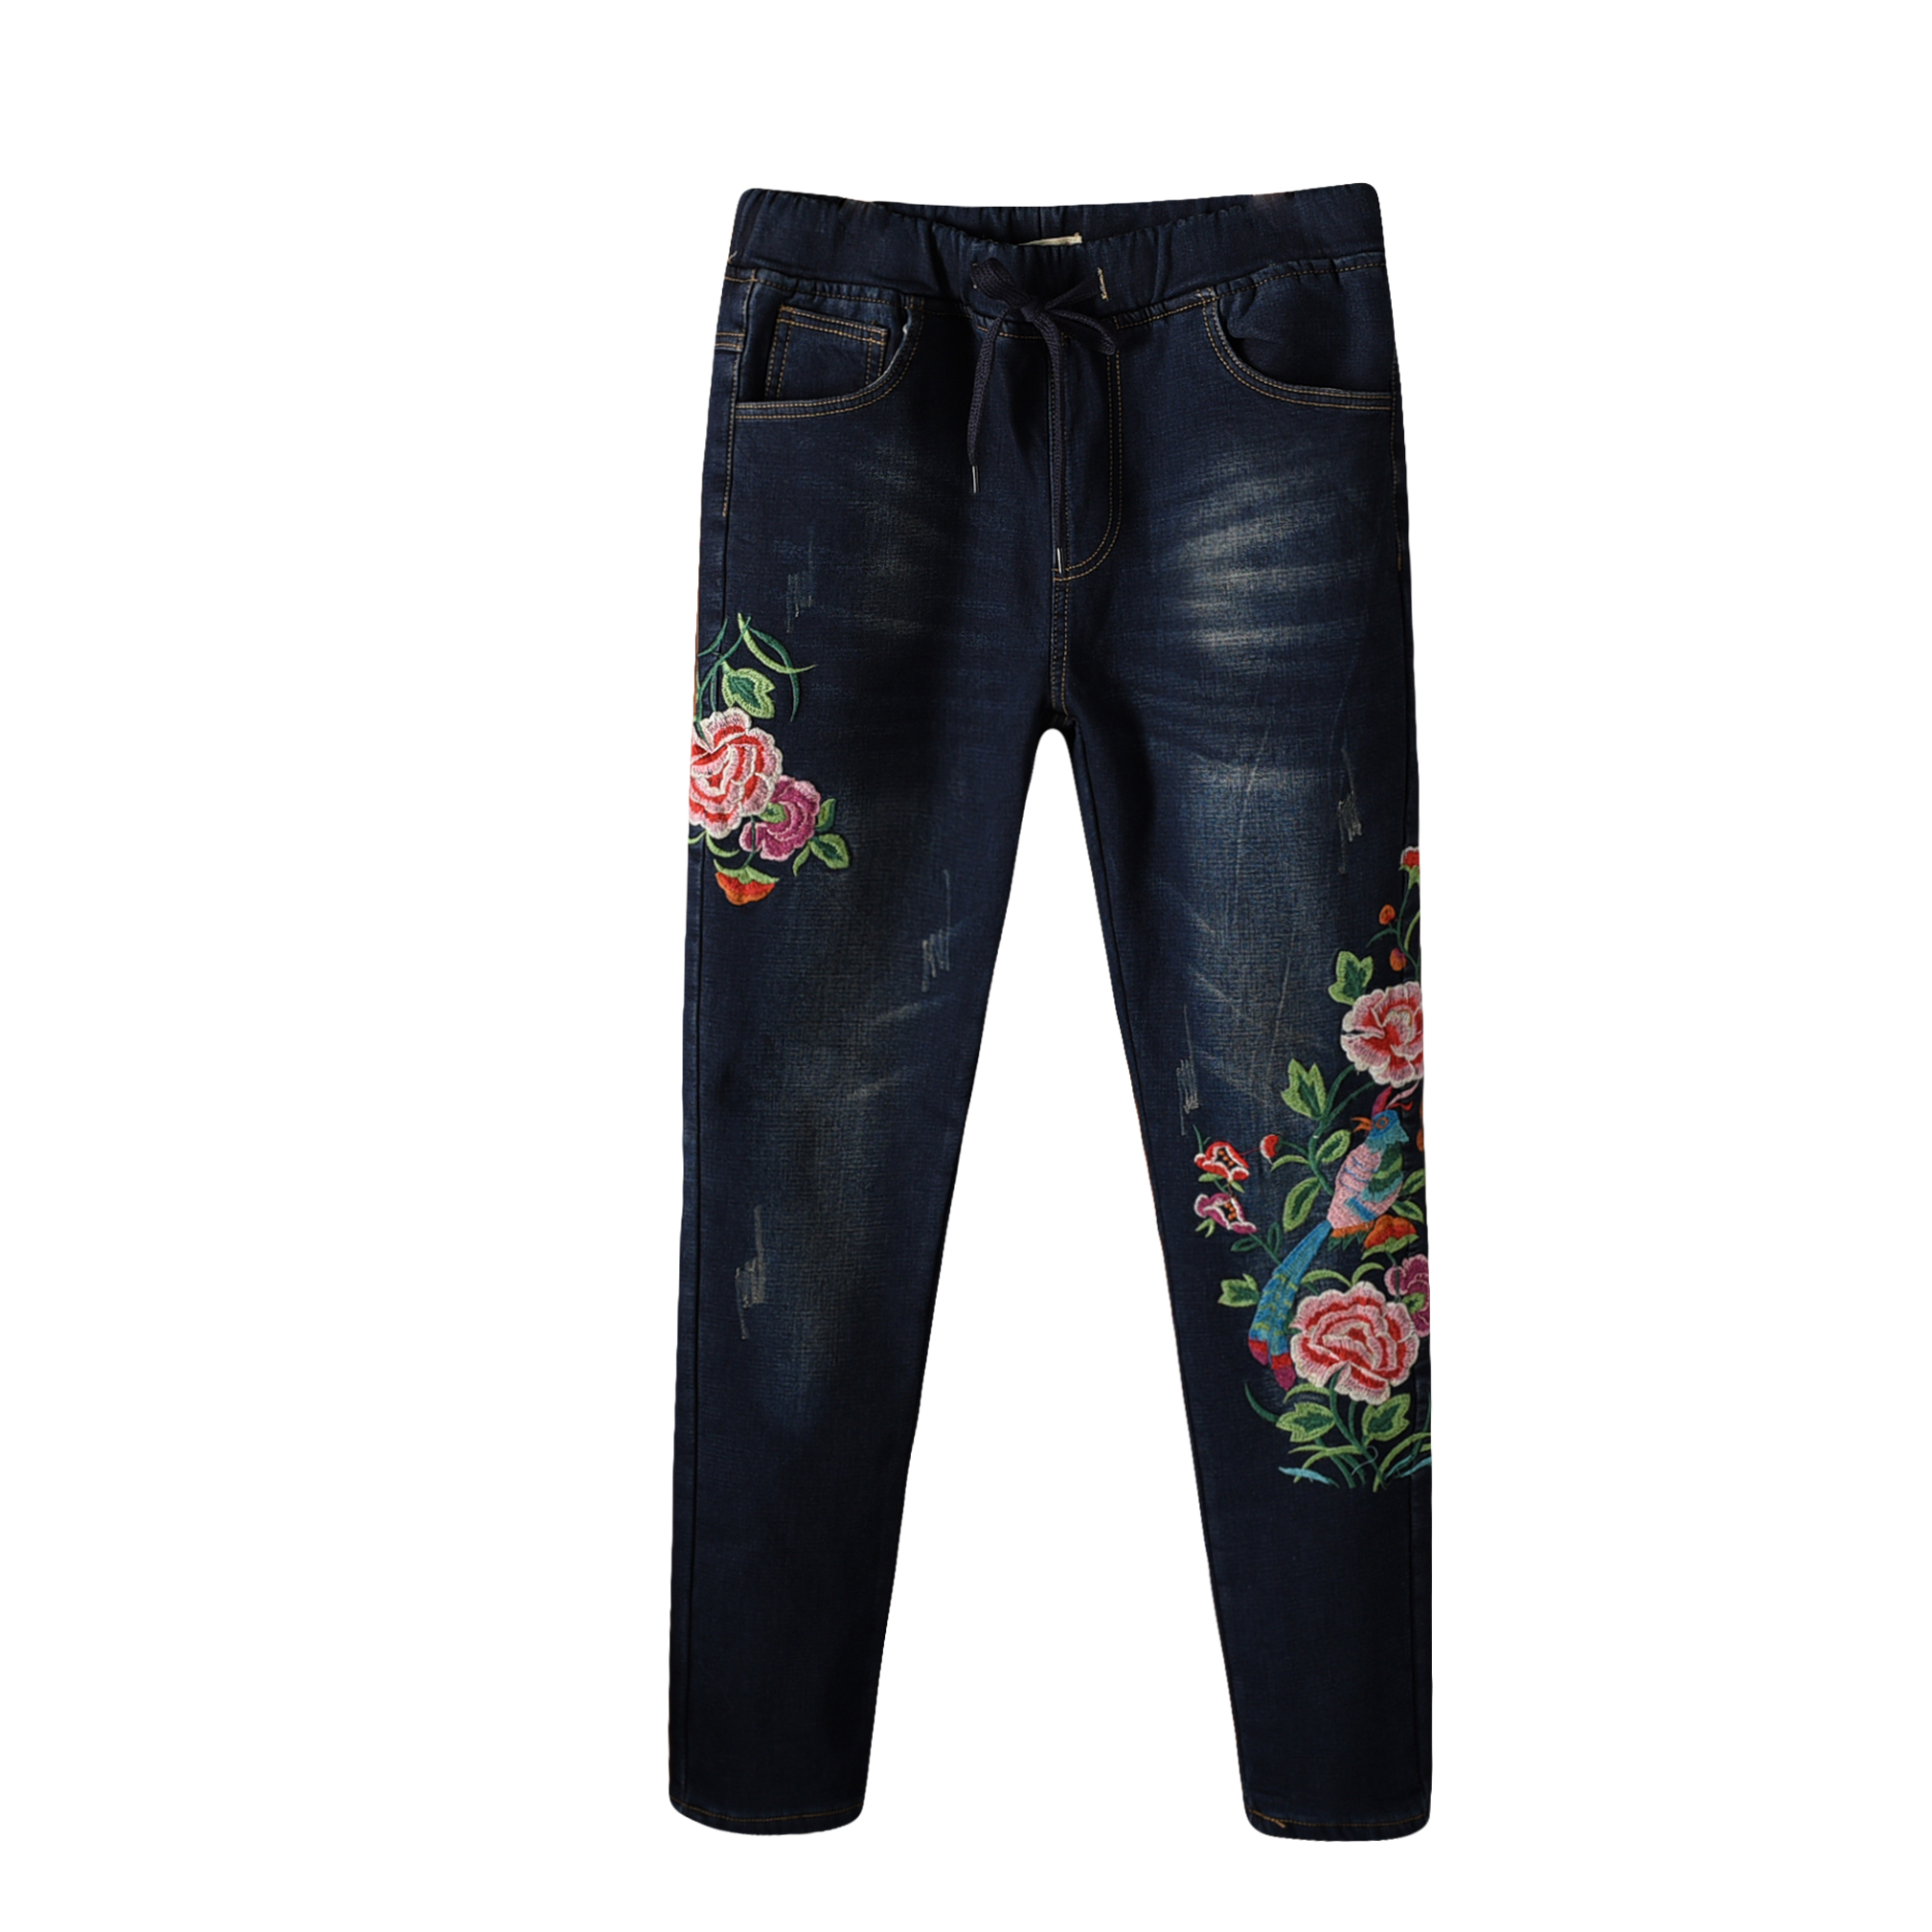 Non Stretch Jeans For Women - Most Popular Jeans 2017